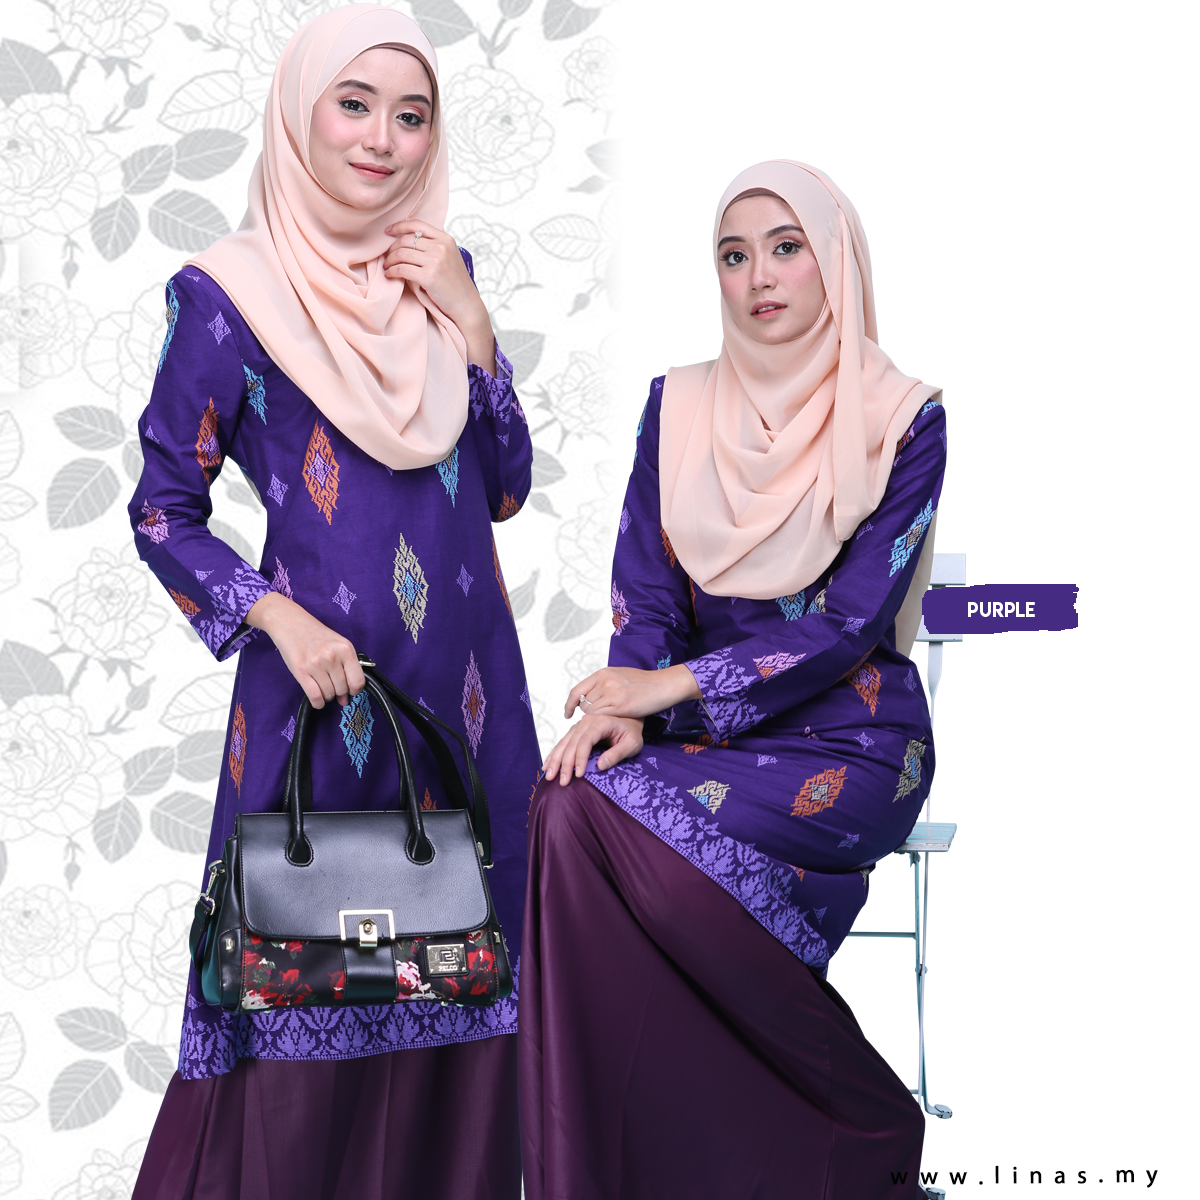 Kurung Riau Ammara / Moden Stylish Kurung Songlet / Casual Wear / Office Wear